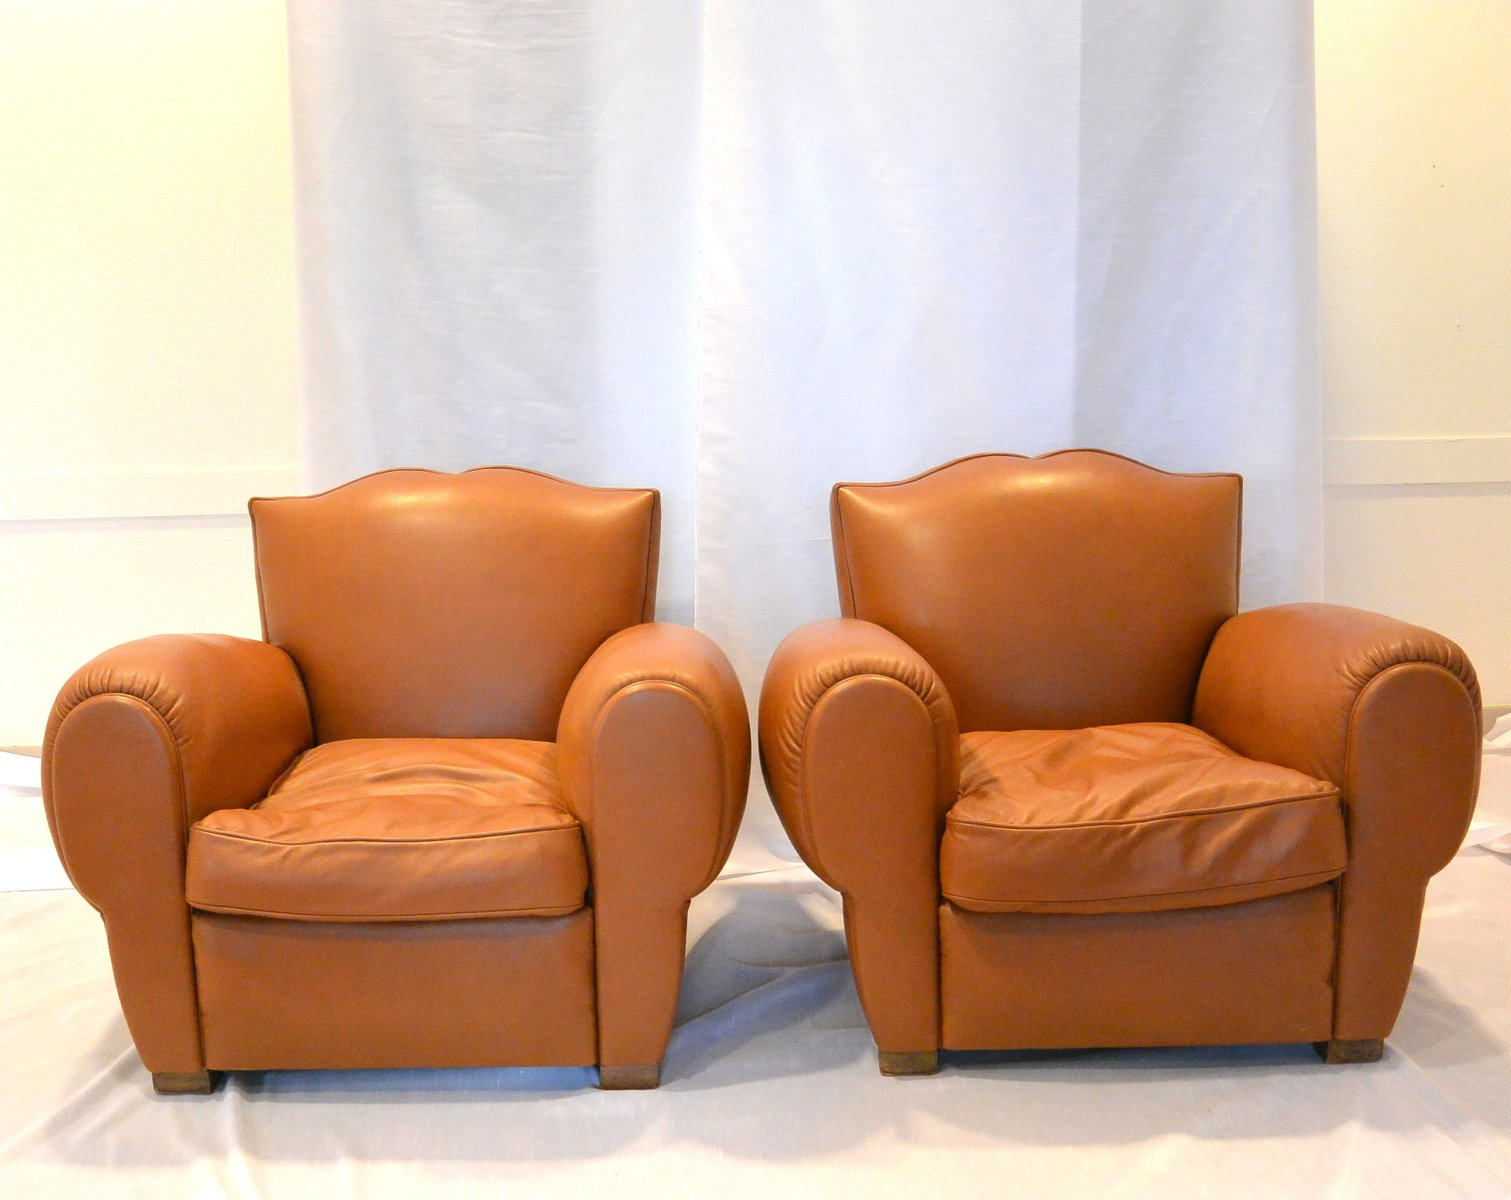 com chairs collectables napoleonrockefeller leather and vintage club product painted chair furniture brown armchairs